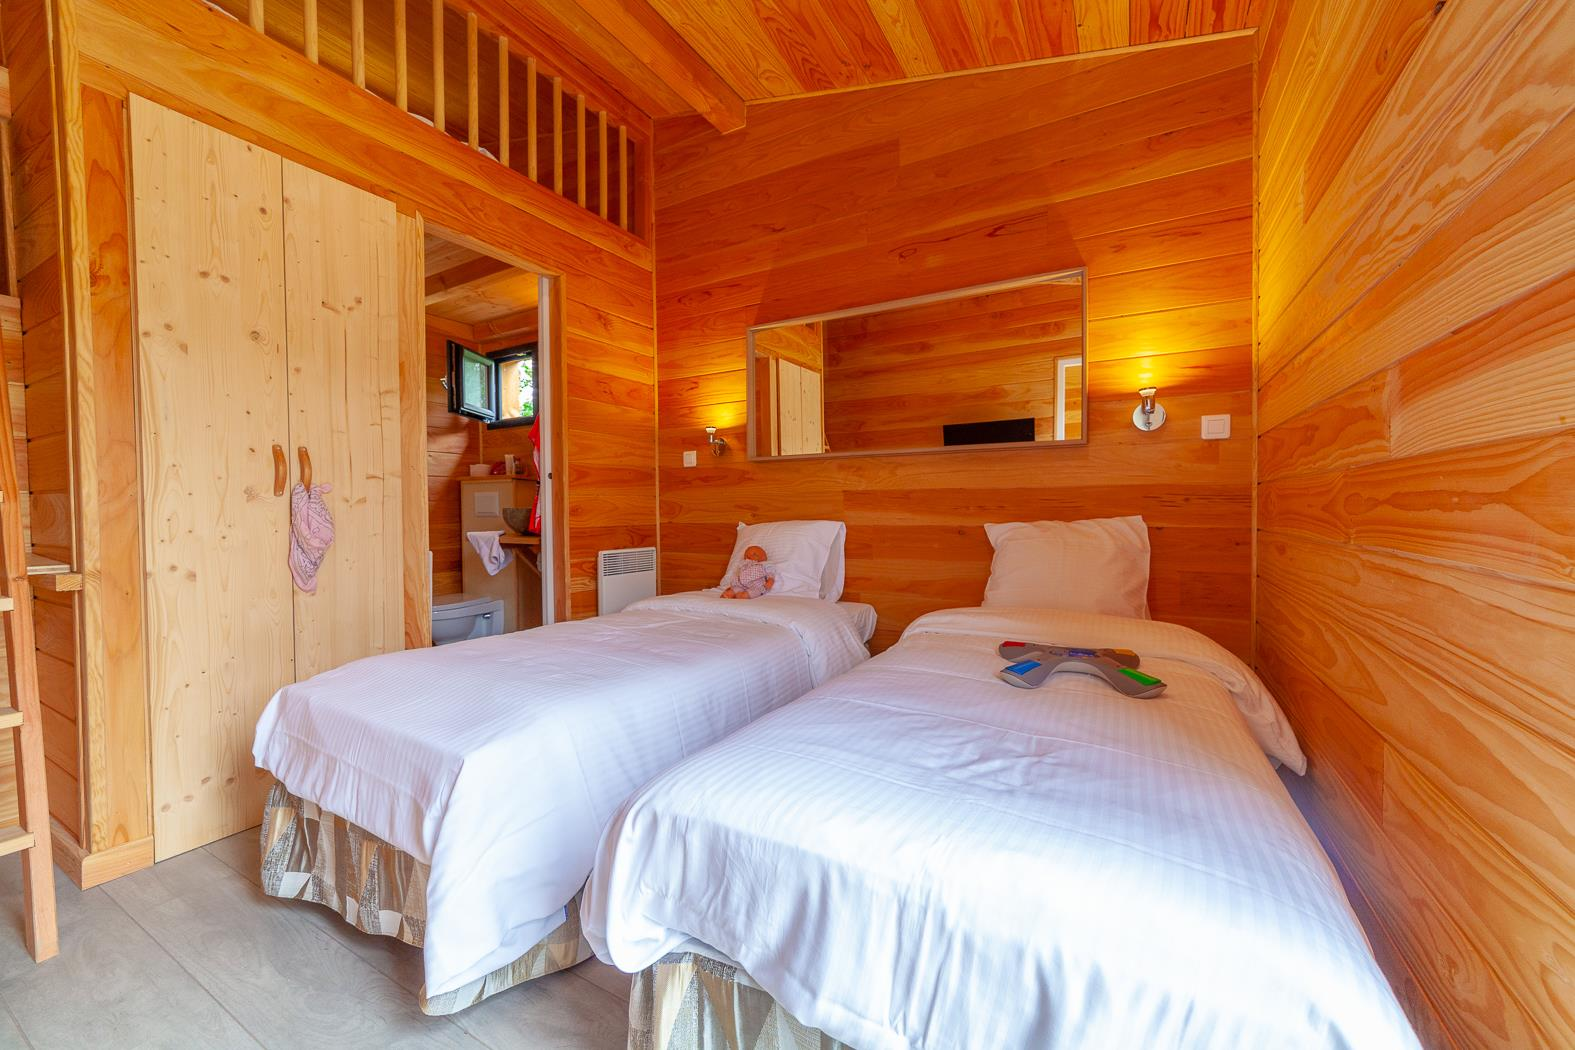 Bedroom - Hotel Type Bedroom In The Ecolochic Chalet - Sites et Paysages Le Moulin